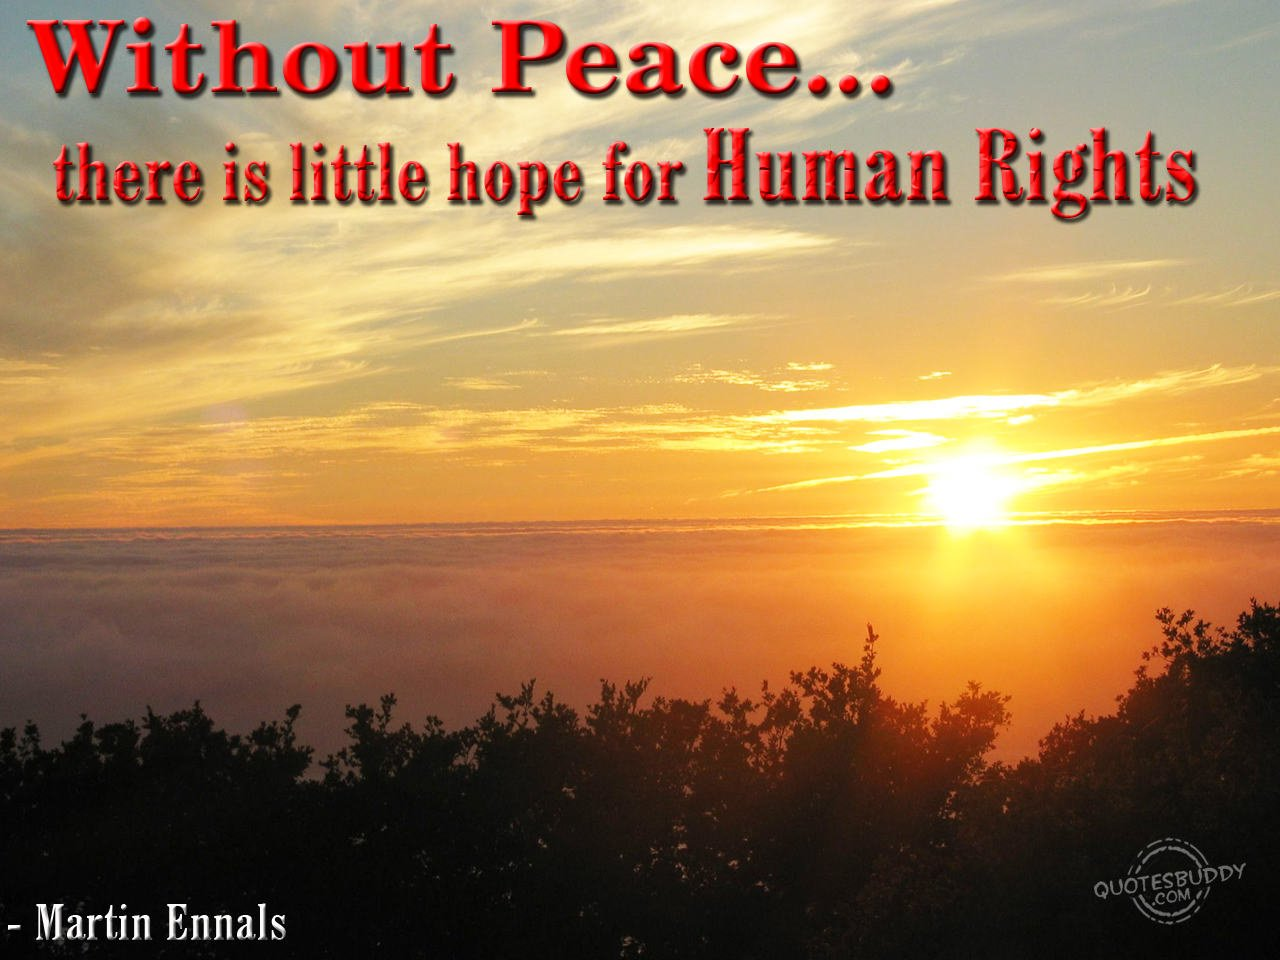 Human Spirit Quotes Quotesgram: Human-Rights Quotes. QuotesGram